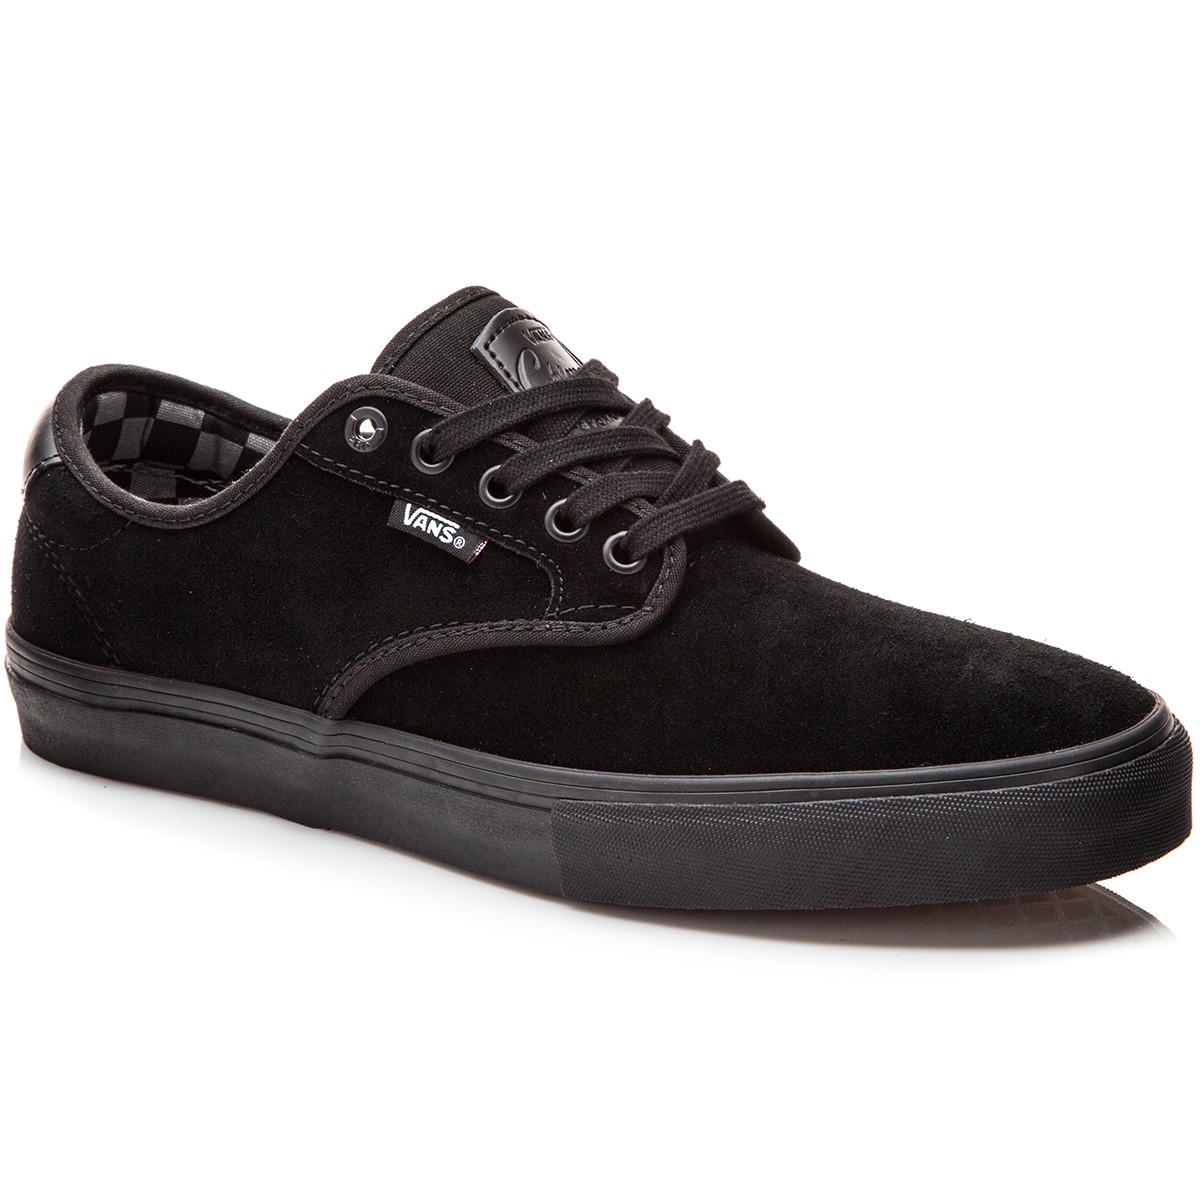 Vans Chima Ferguson Pro Shoes - Mono Black/Black - 8.0